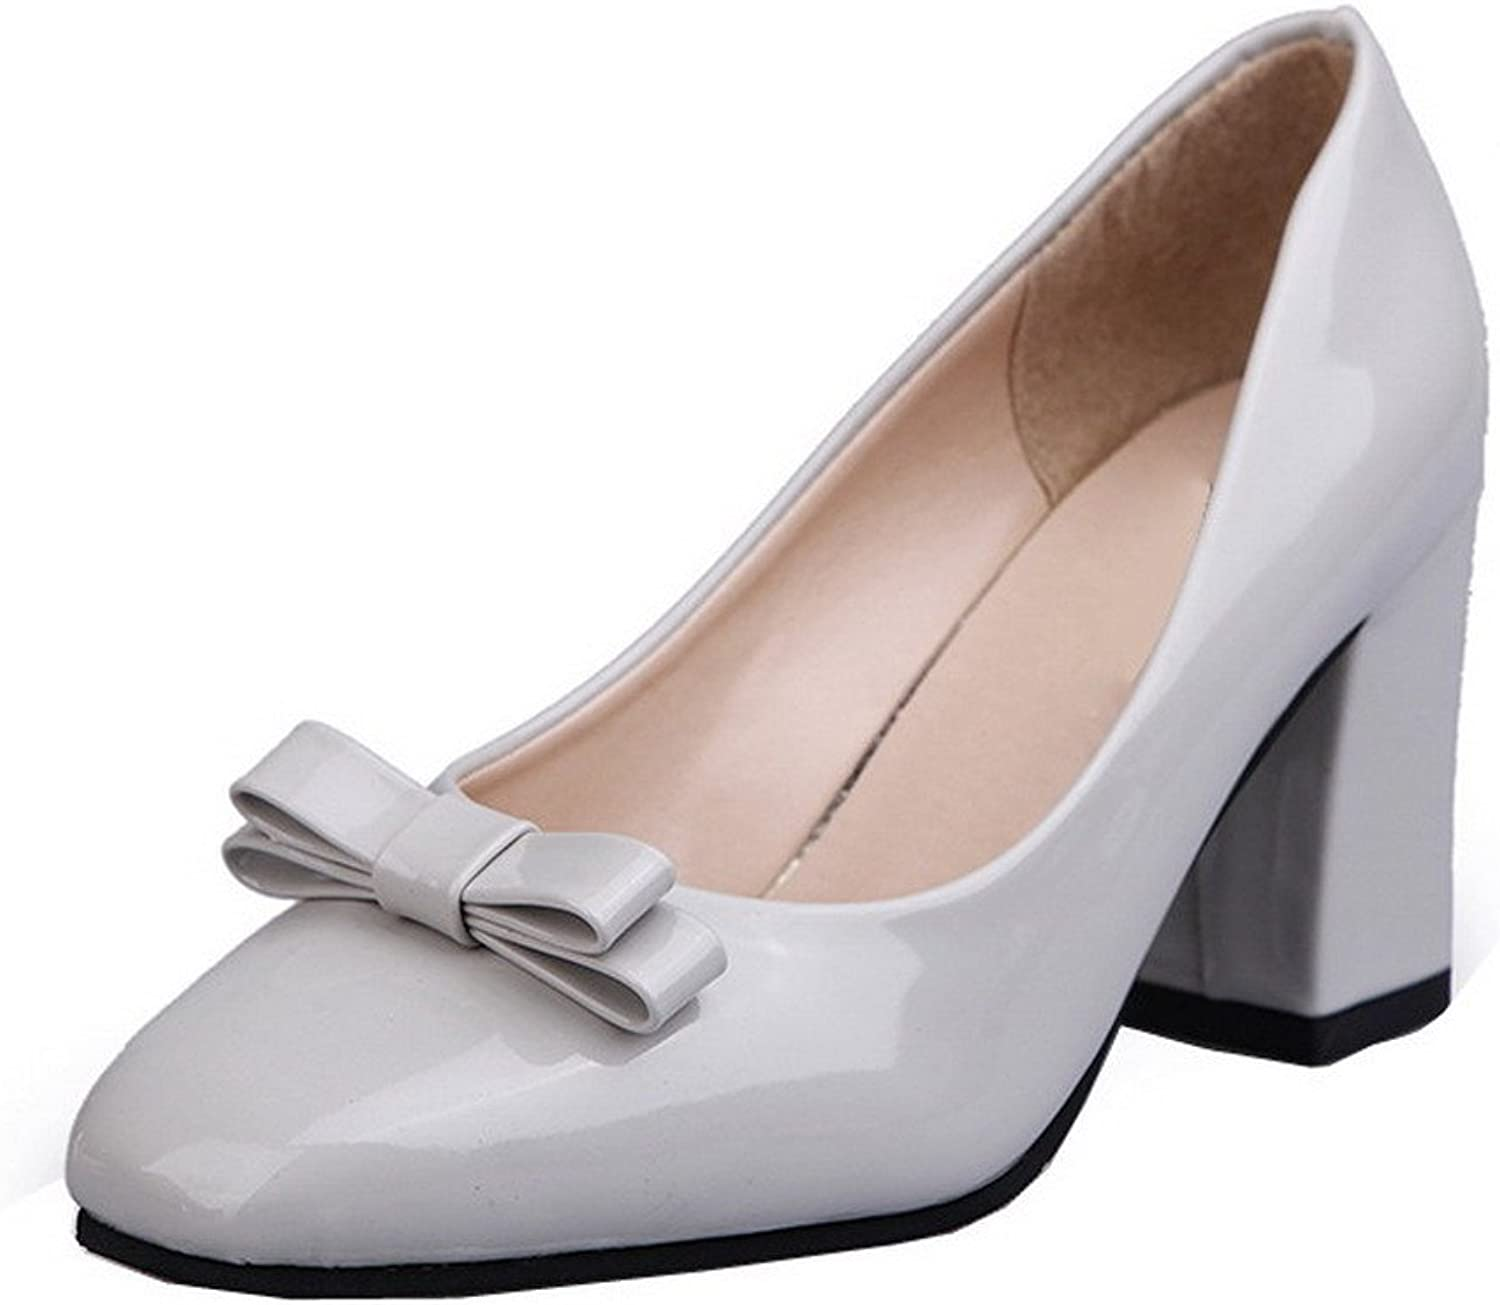 AllhqFashion Women's PU Pull-On Closed-Toe High-Heels Solid Pumps-shoes